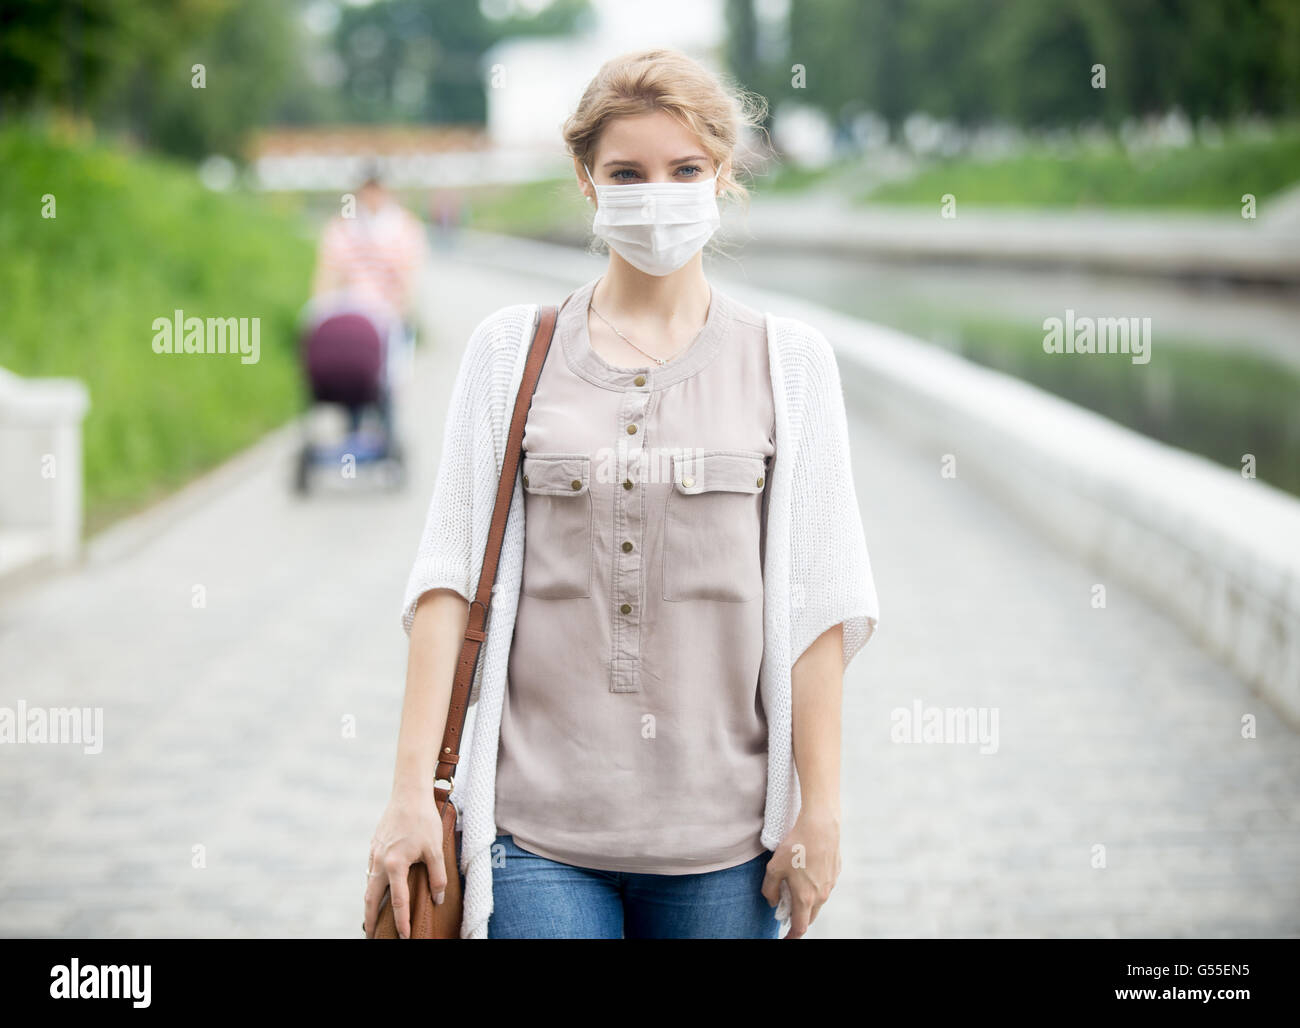 Portrait of beautiful woman walking on the street wearing protective mask as protection against infectious diseases. - Stock Image